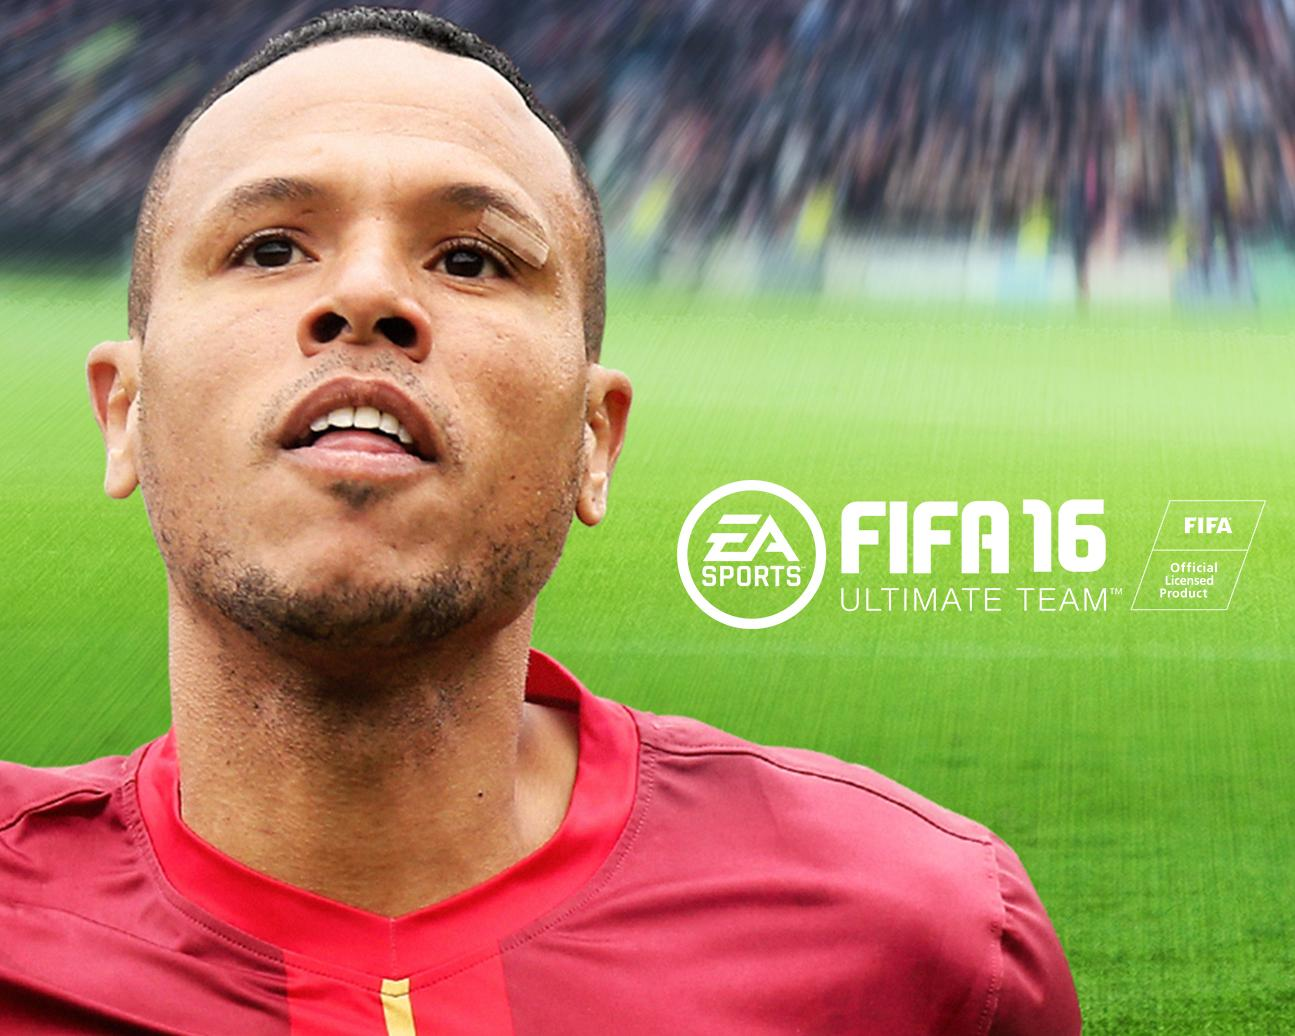 Luís Fabiano - FIFA 16 Ultimate Team